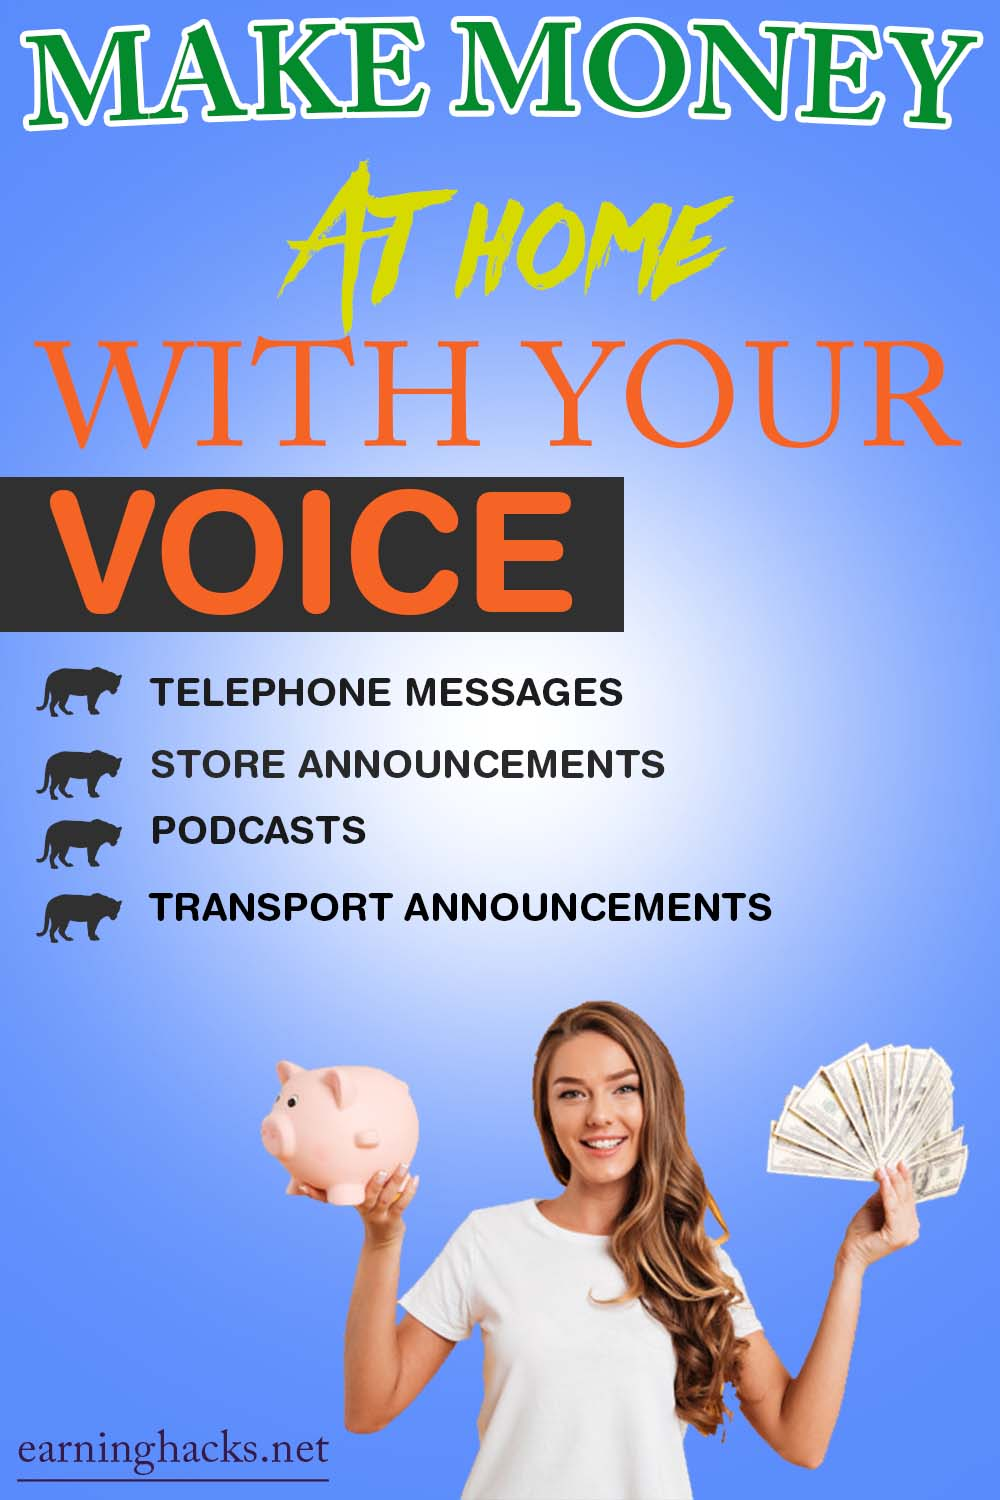 Make Money At Home With Your Voice